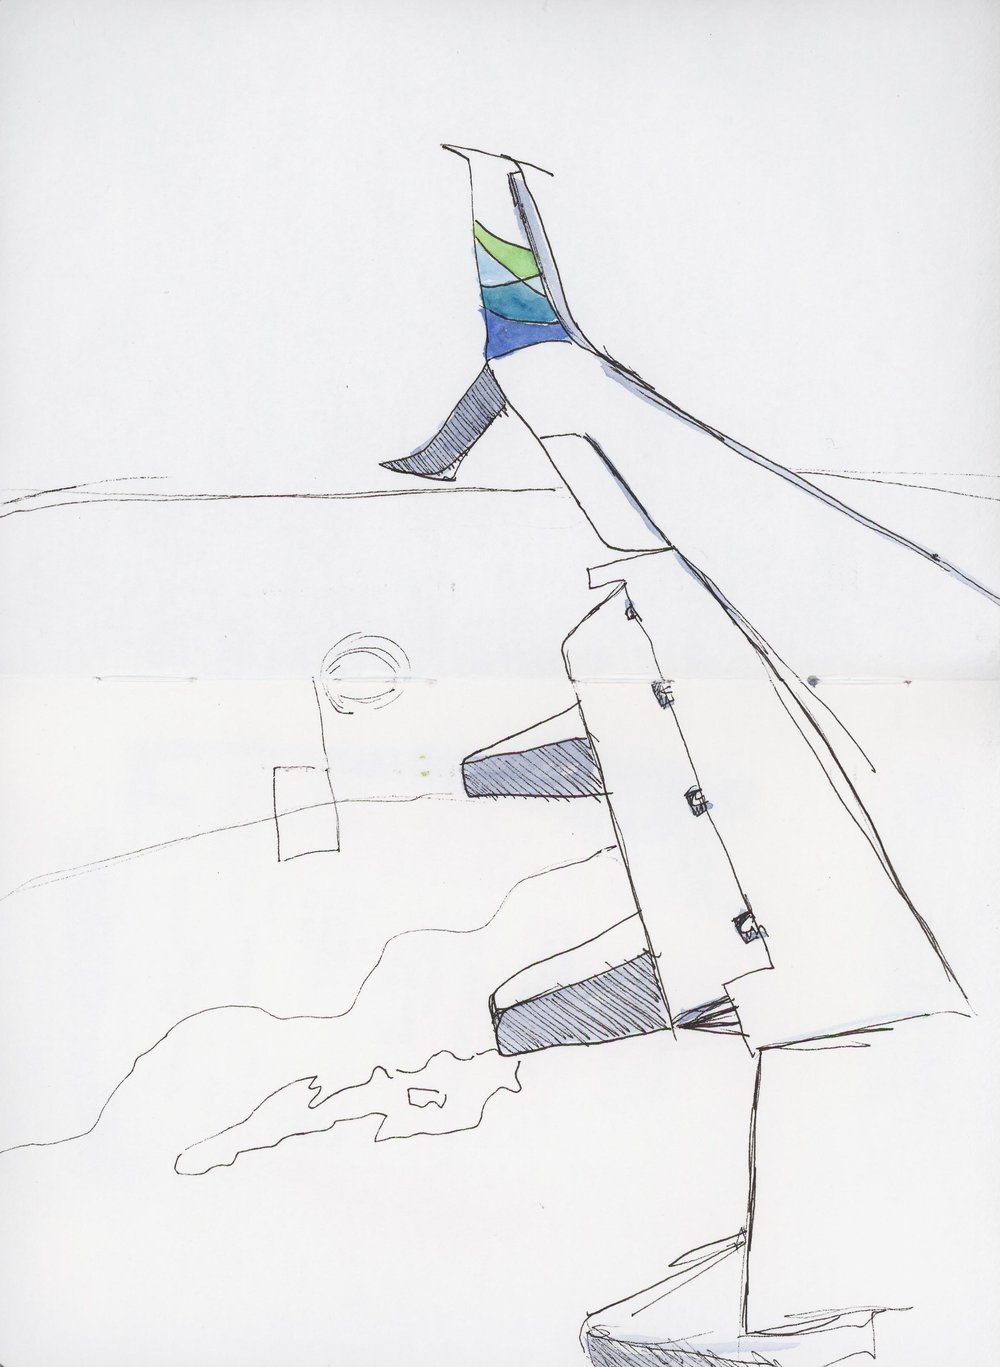 Back to my beloved Alaska Airlines and the commuter flight from Seattle to Spokane. I decided to make the 40 minute flight a good reason to be really minimalist with this sketch.